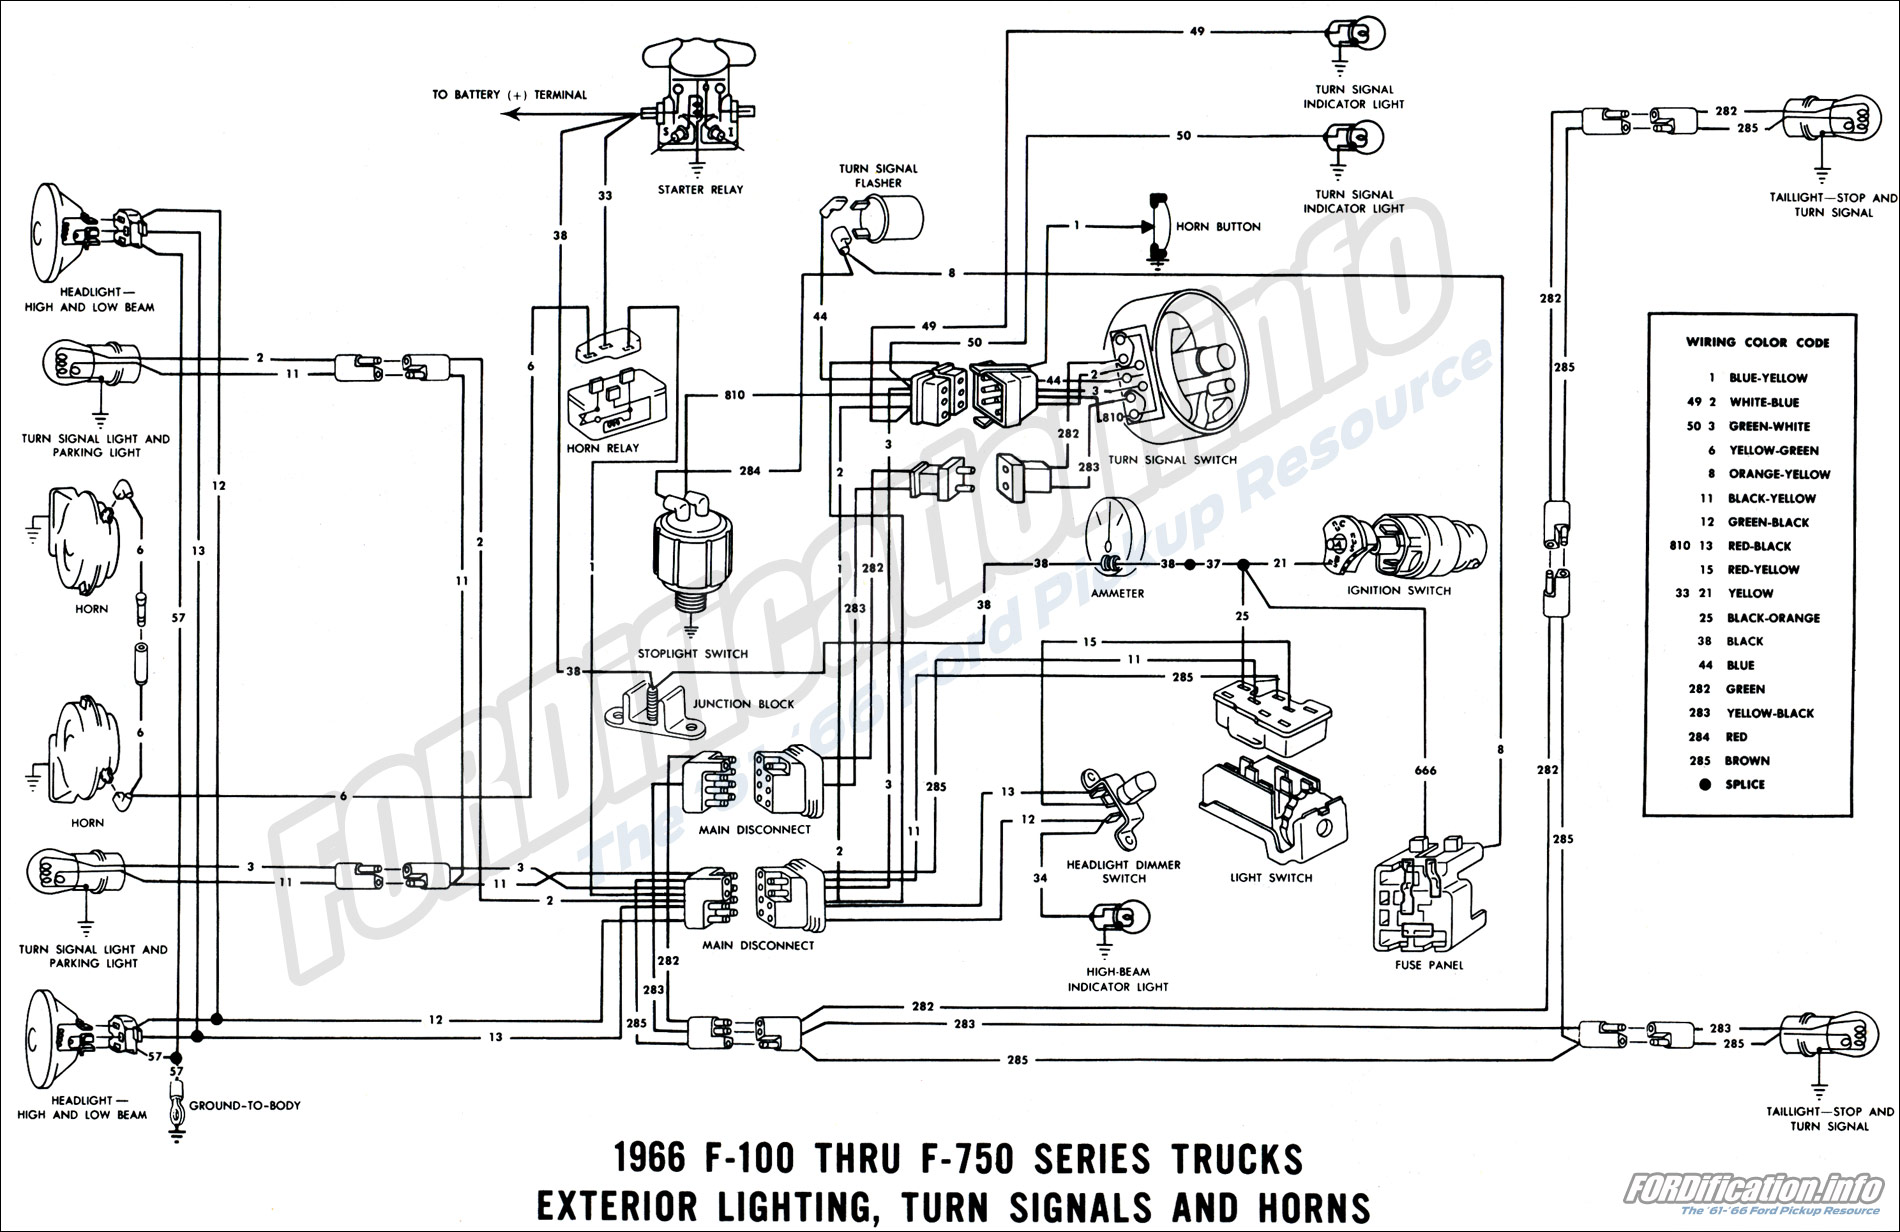 1966 ford truck wiring diagrams fordification info the 61 66 rh fordification info 1955 ford f100 wiring diagram 1970 ford f100 wiring diagram